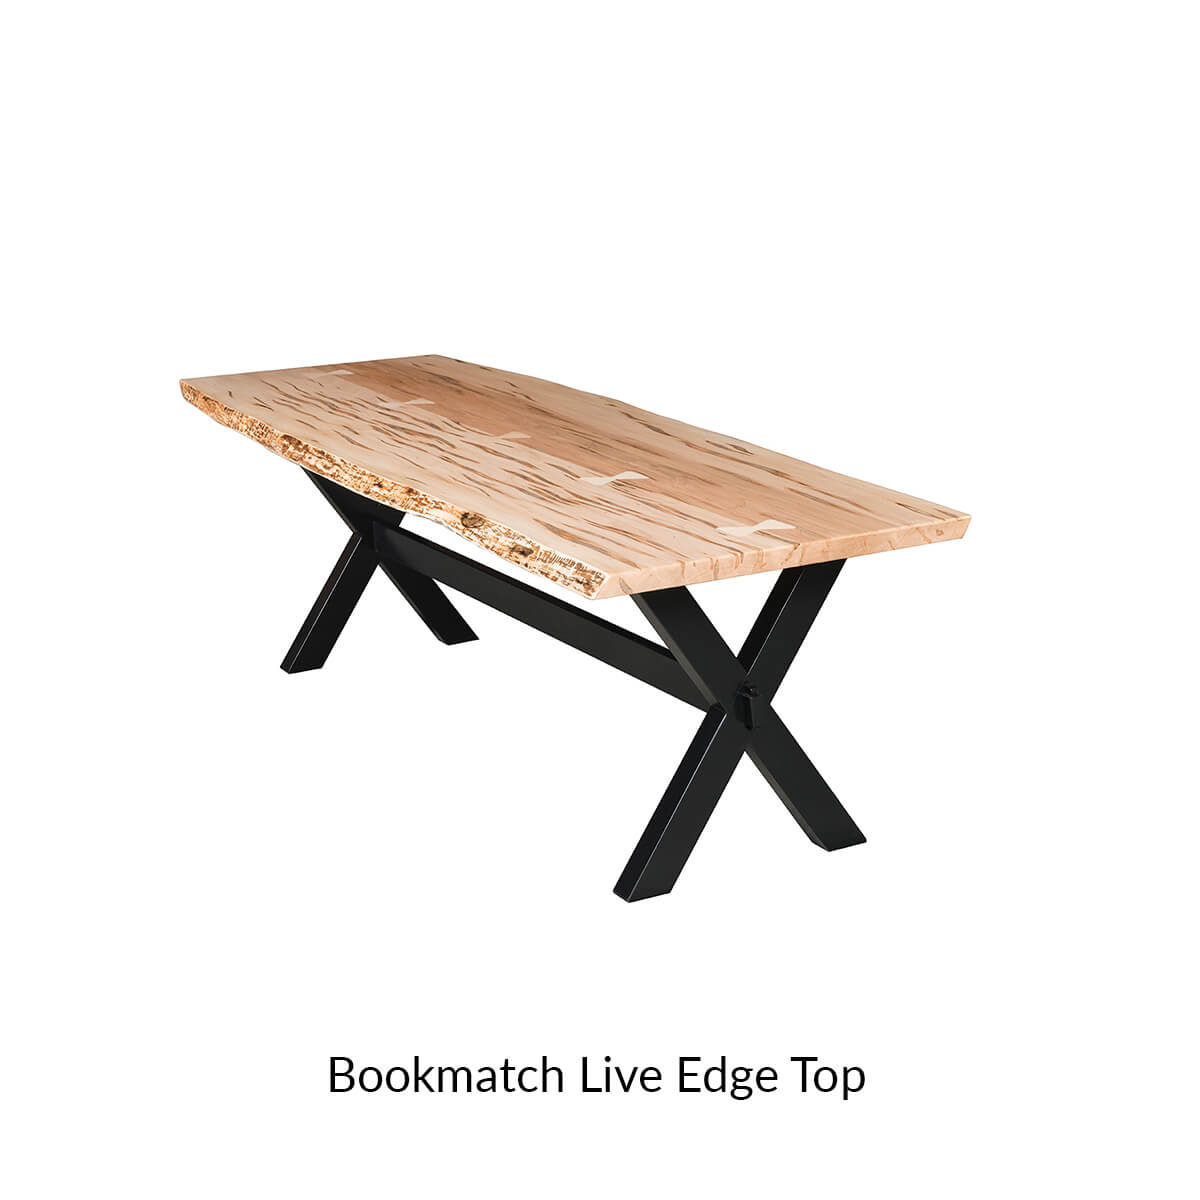 2.0-bookmatch-live-edge-top.jpg